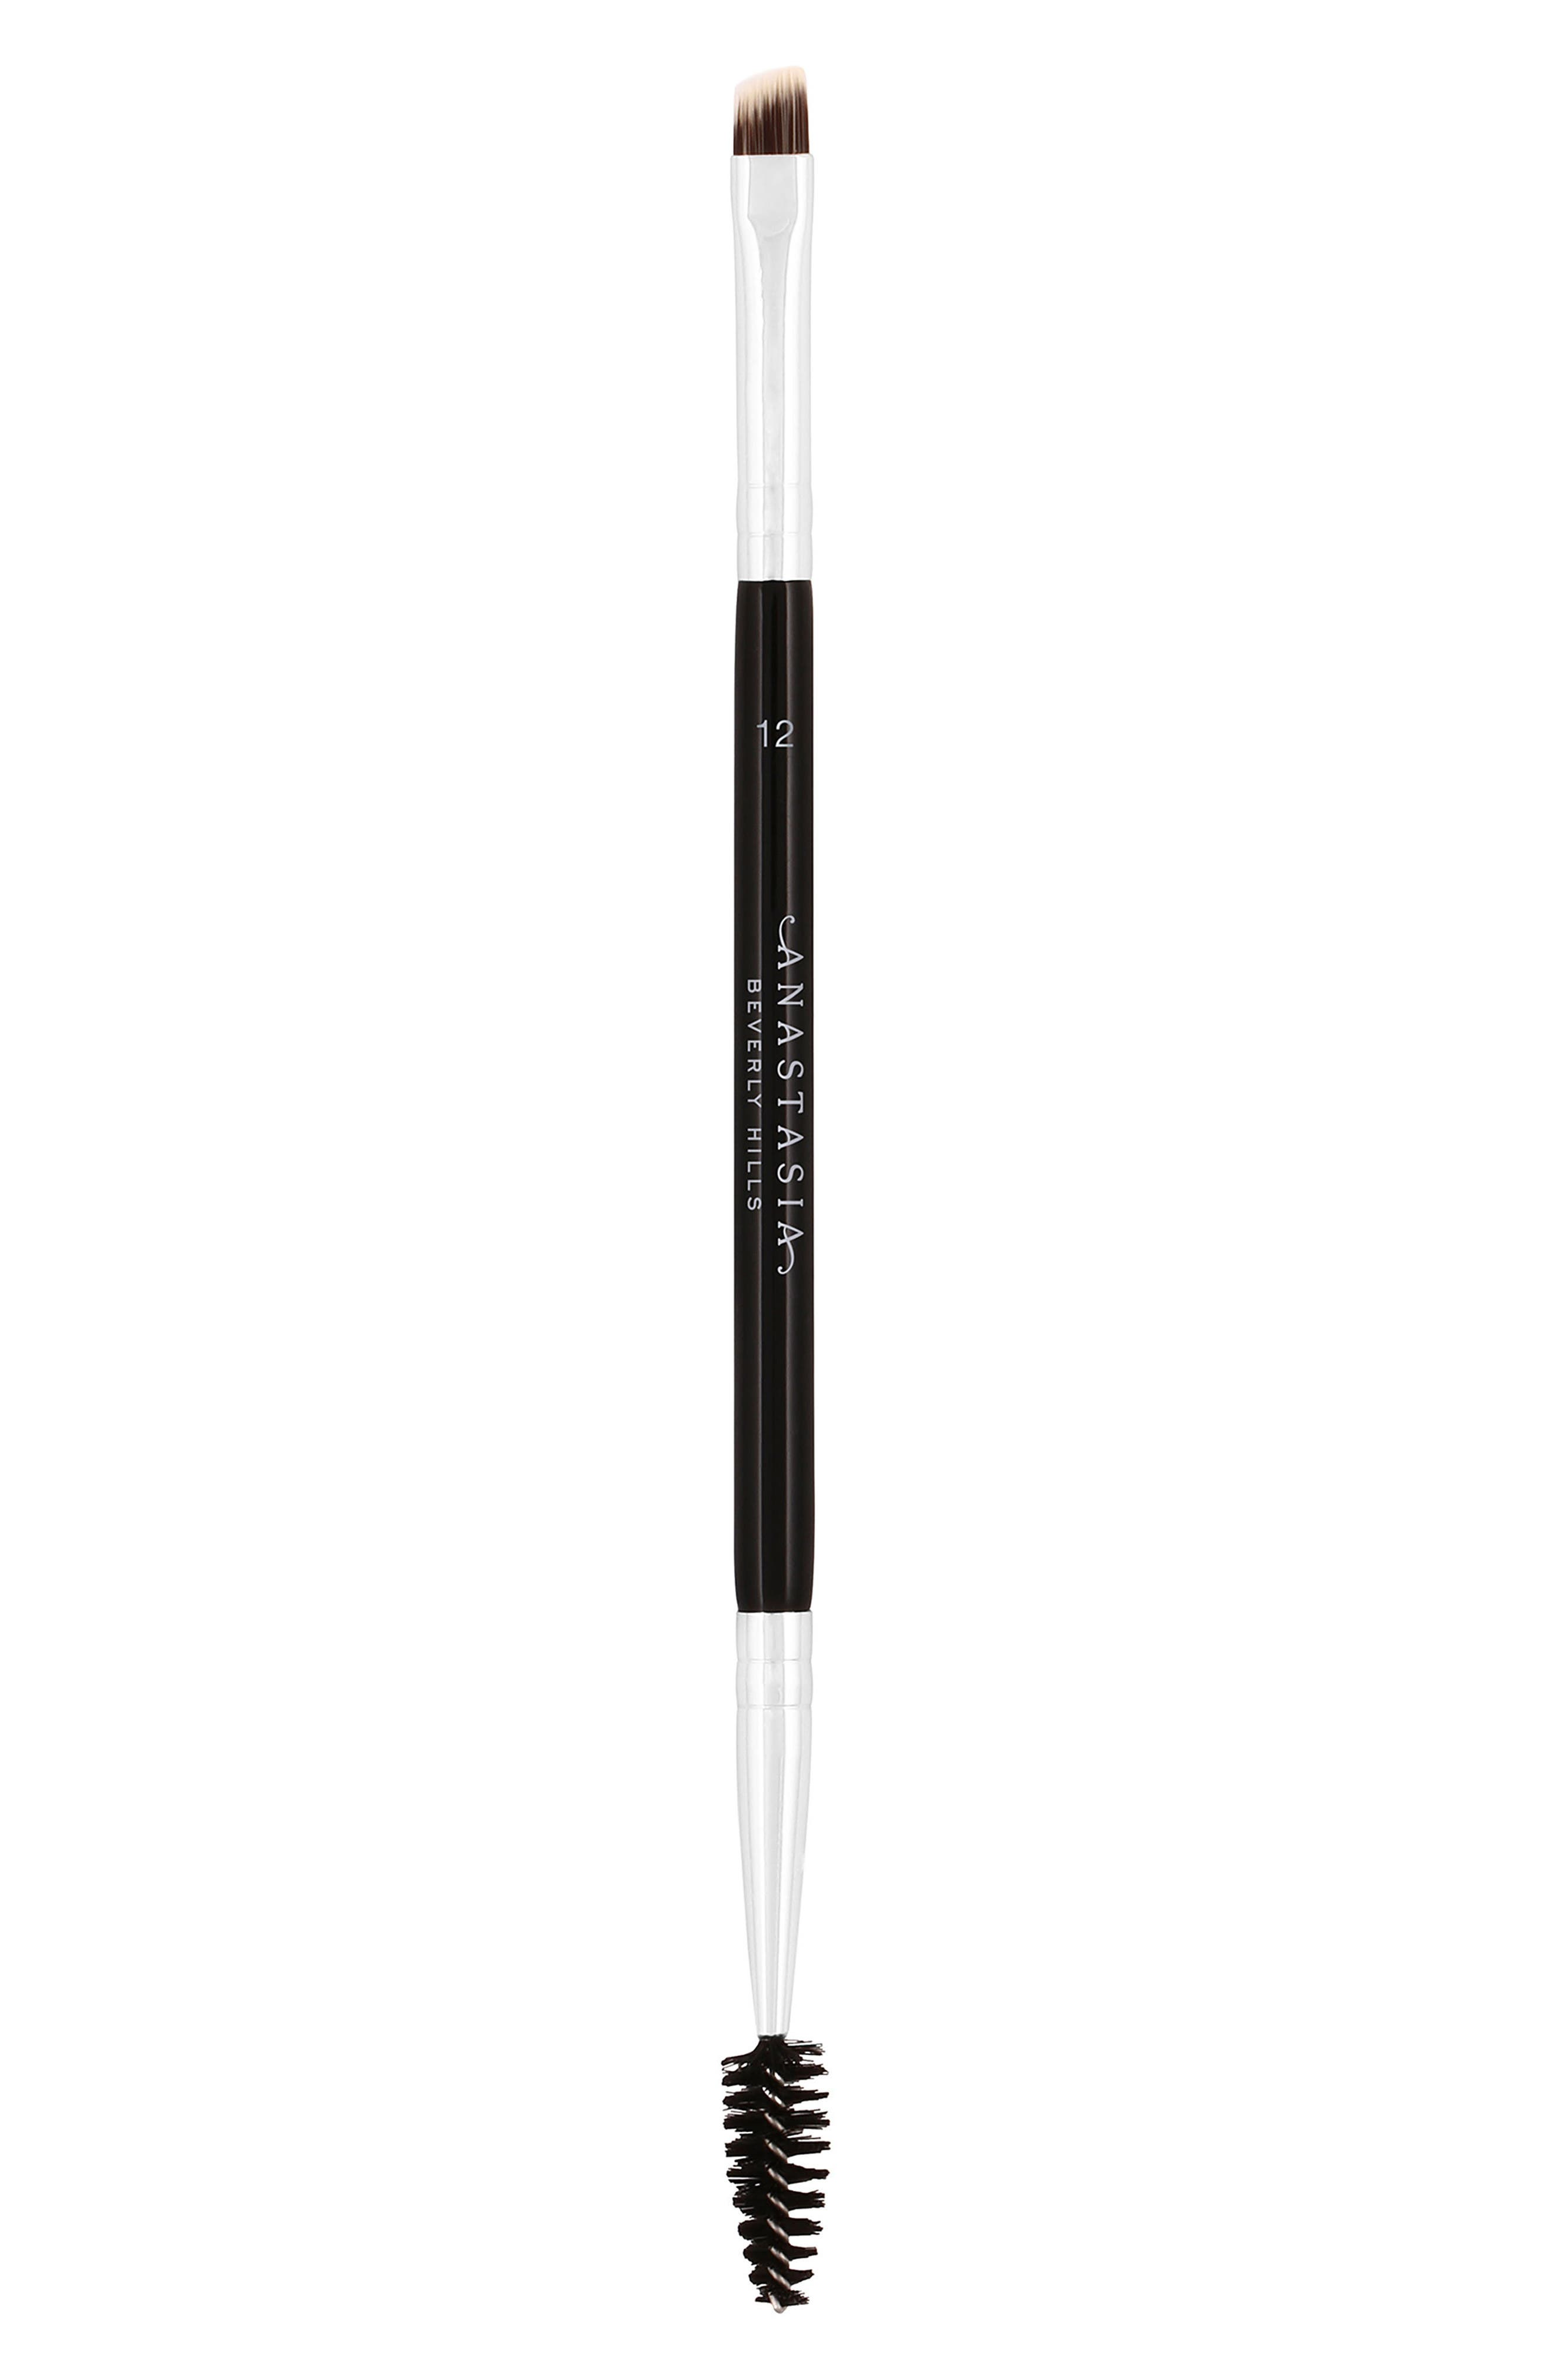 #12 Large Synthetic Duo Brow Brush